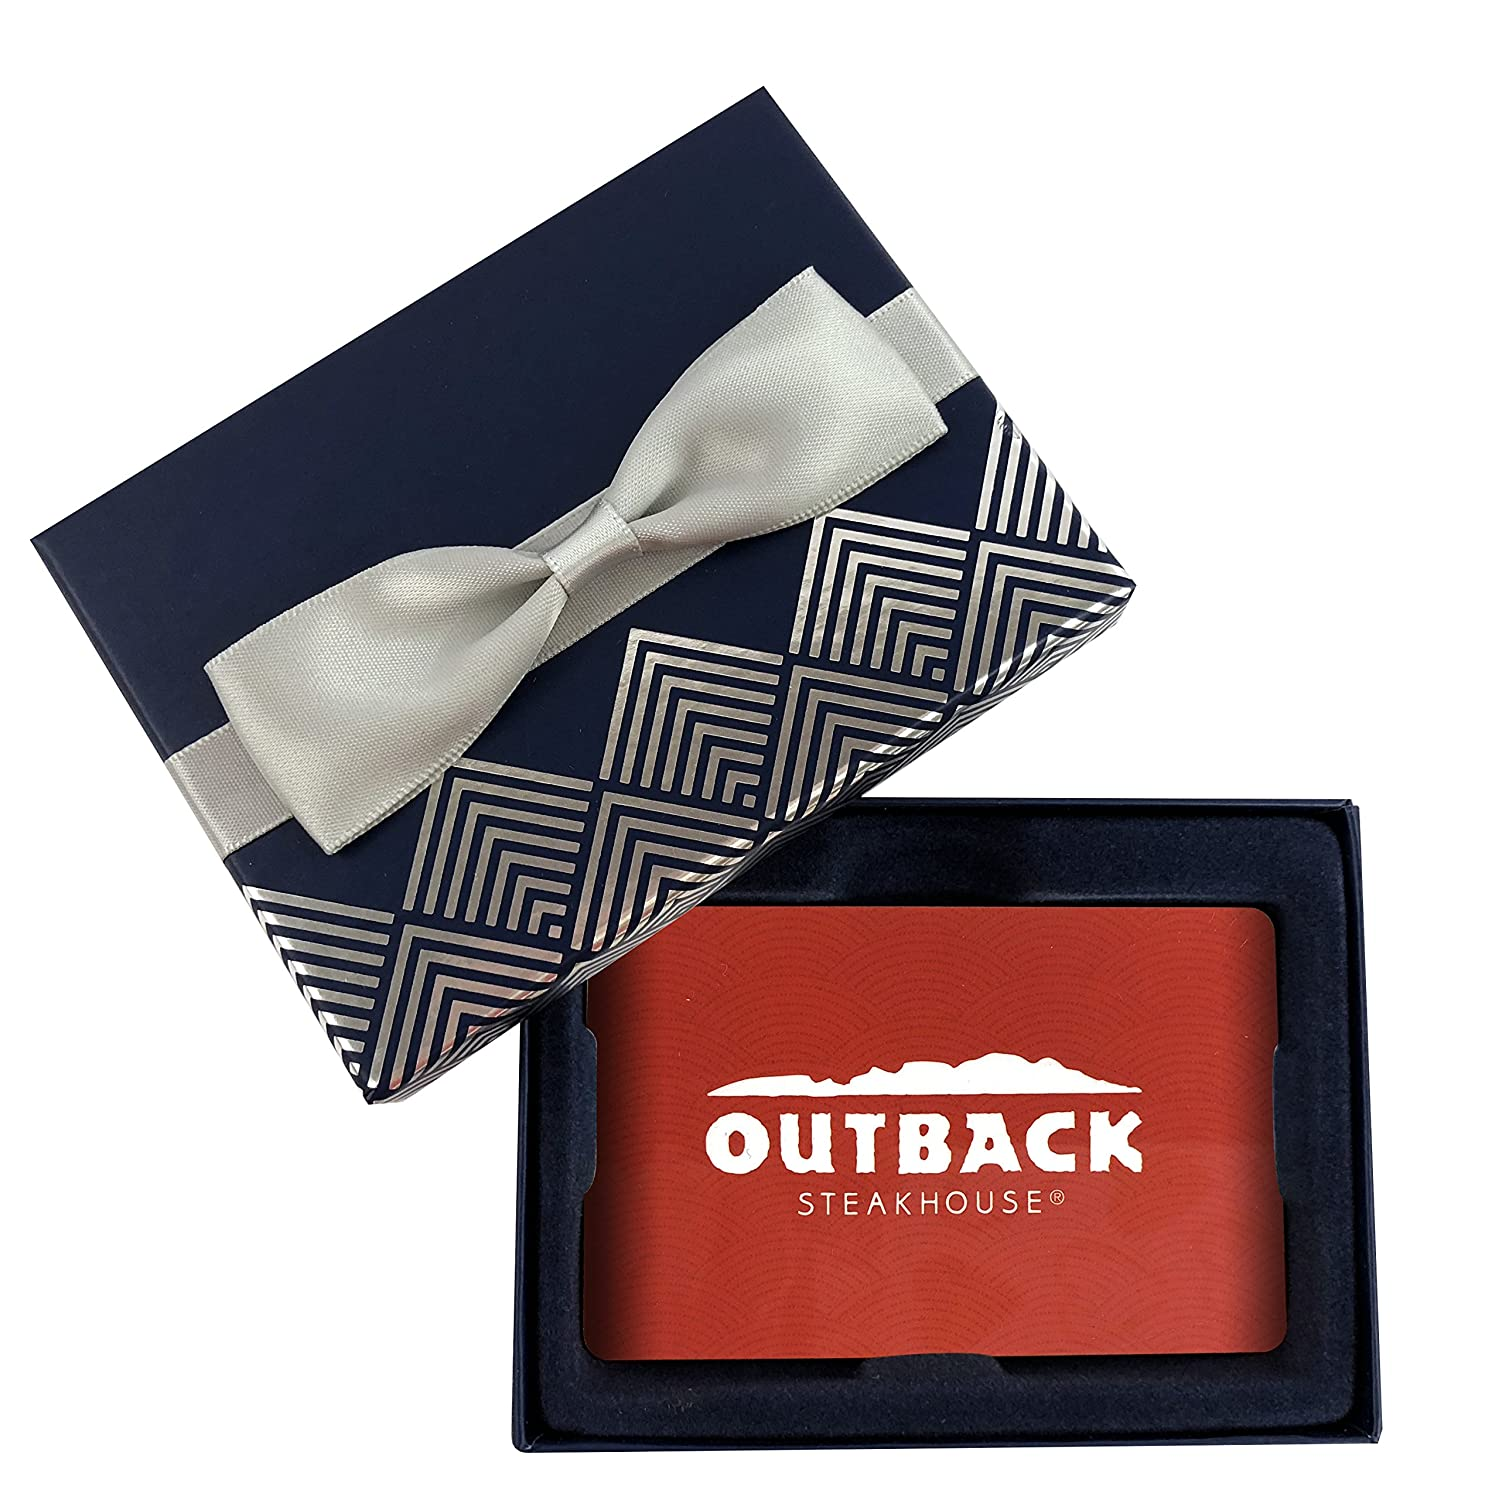 Outback Gift Card $50 - In a Gift Box